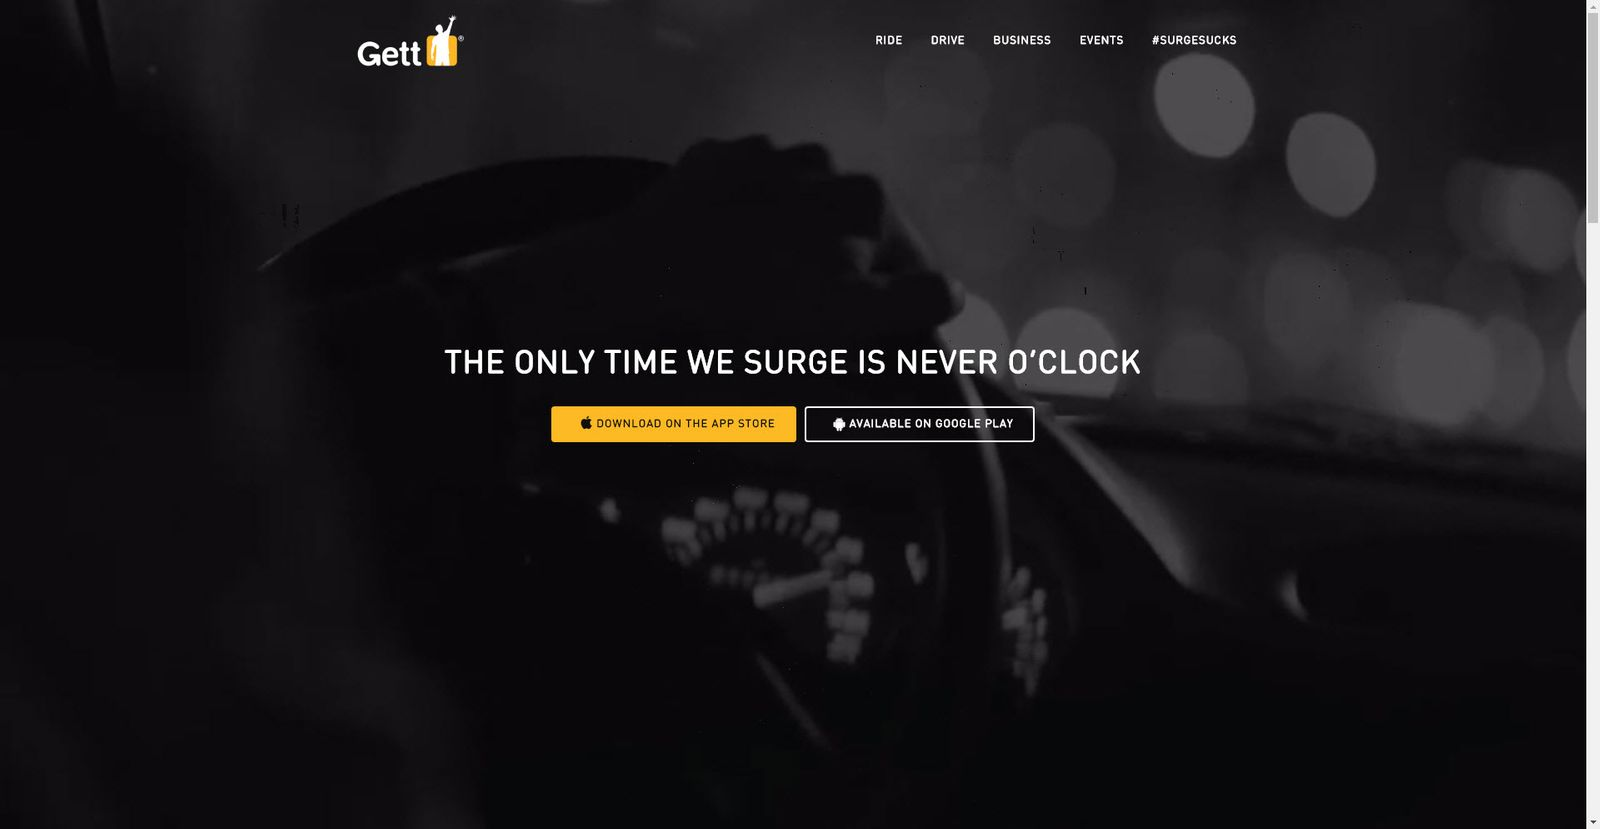 SCREENSHOT | gett.com